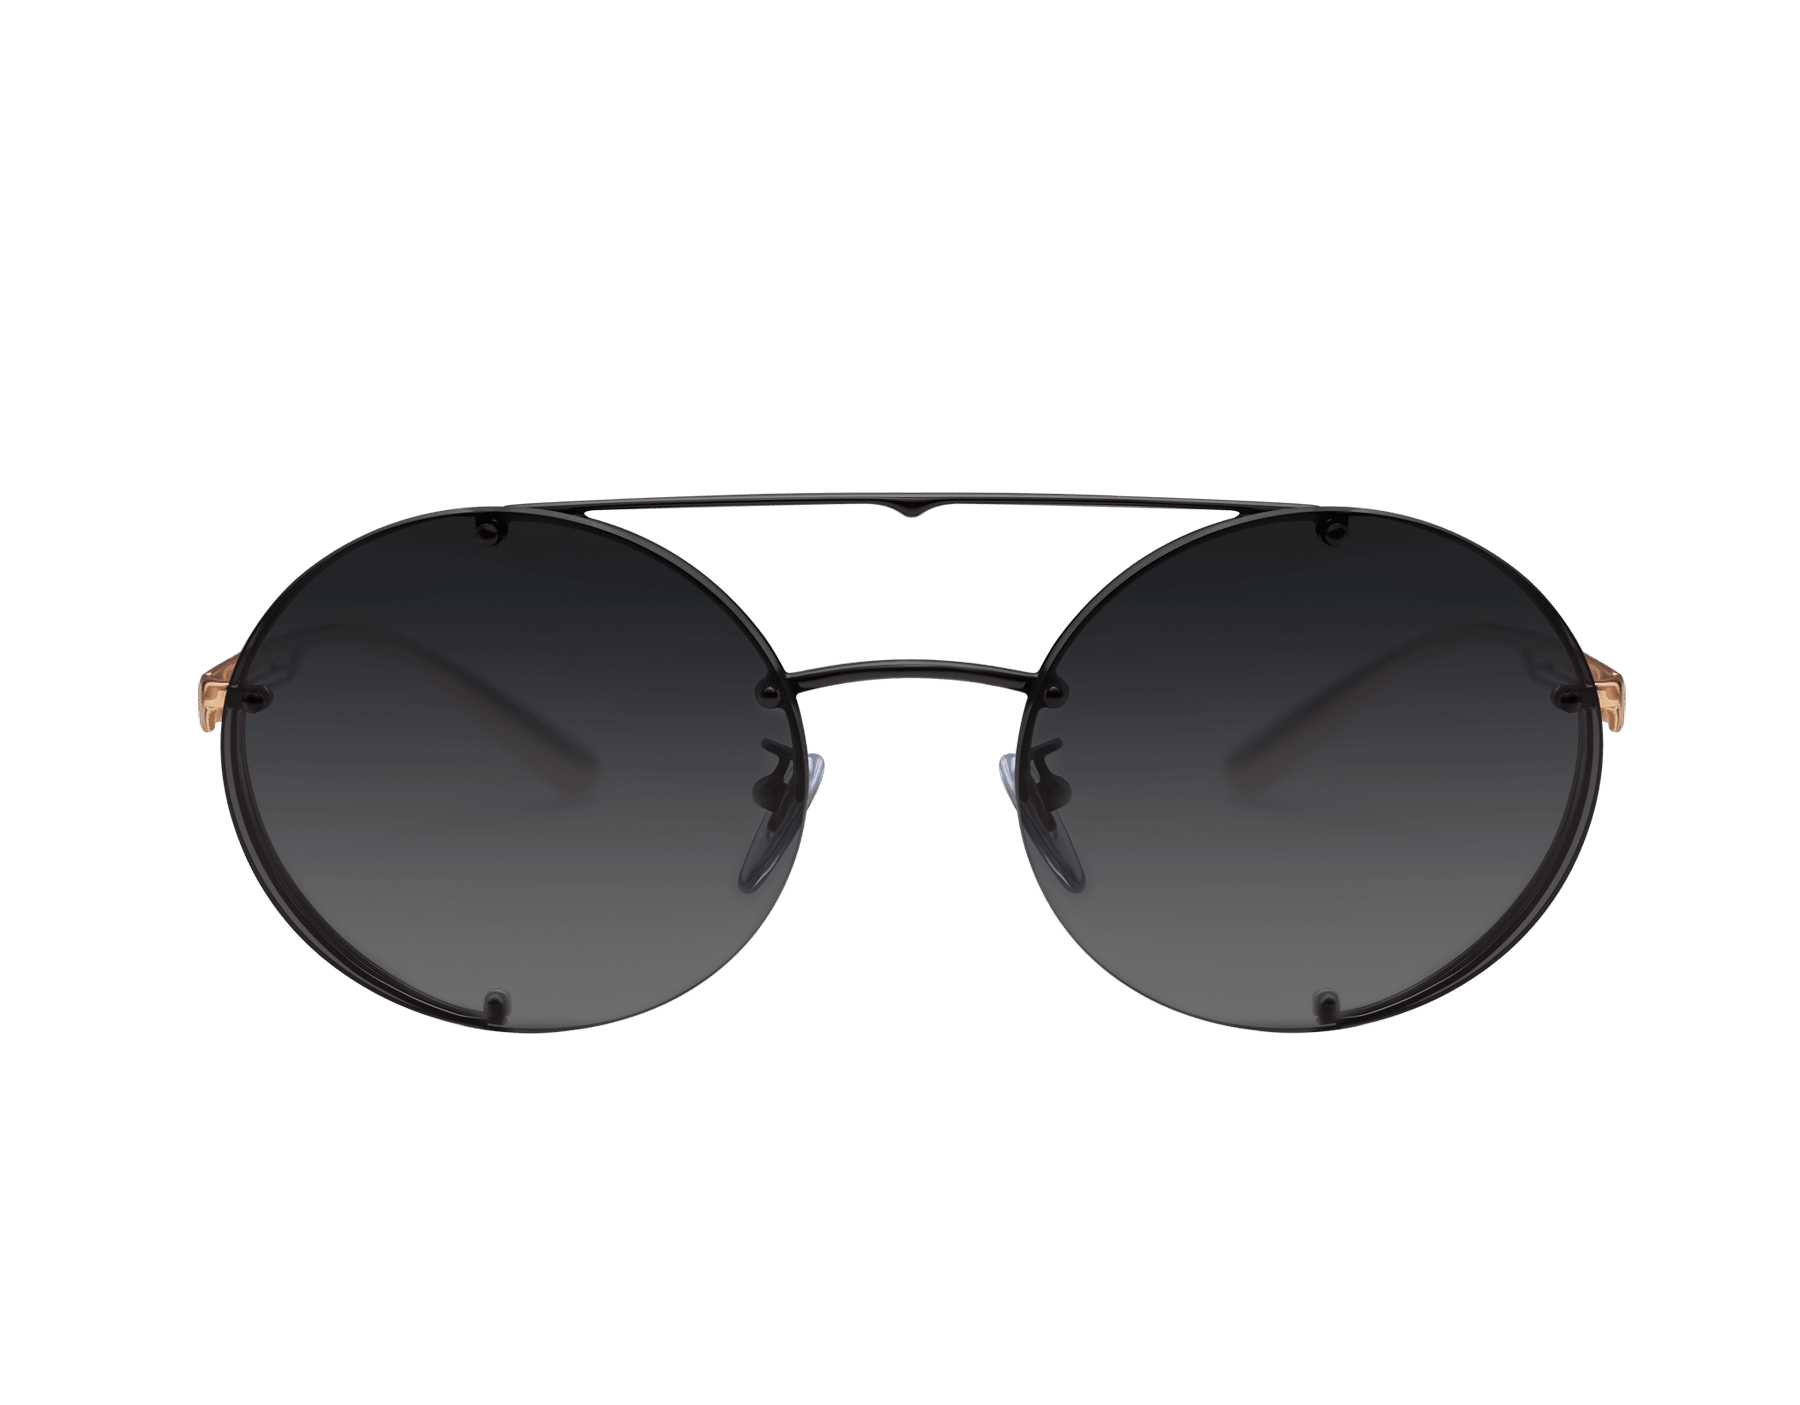 Bvlgari B.zero1 B.flyingstripe round metal aviator sunglasses. 903818 image 2